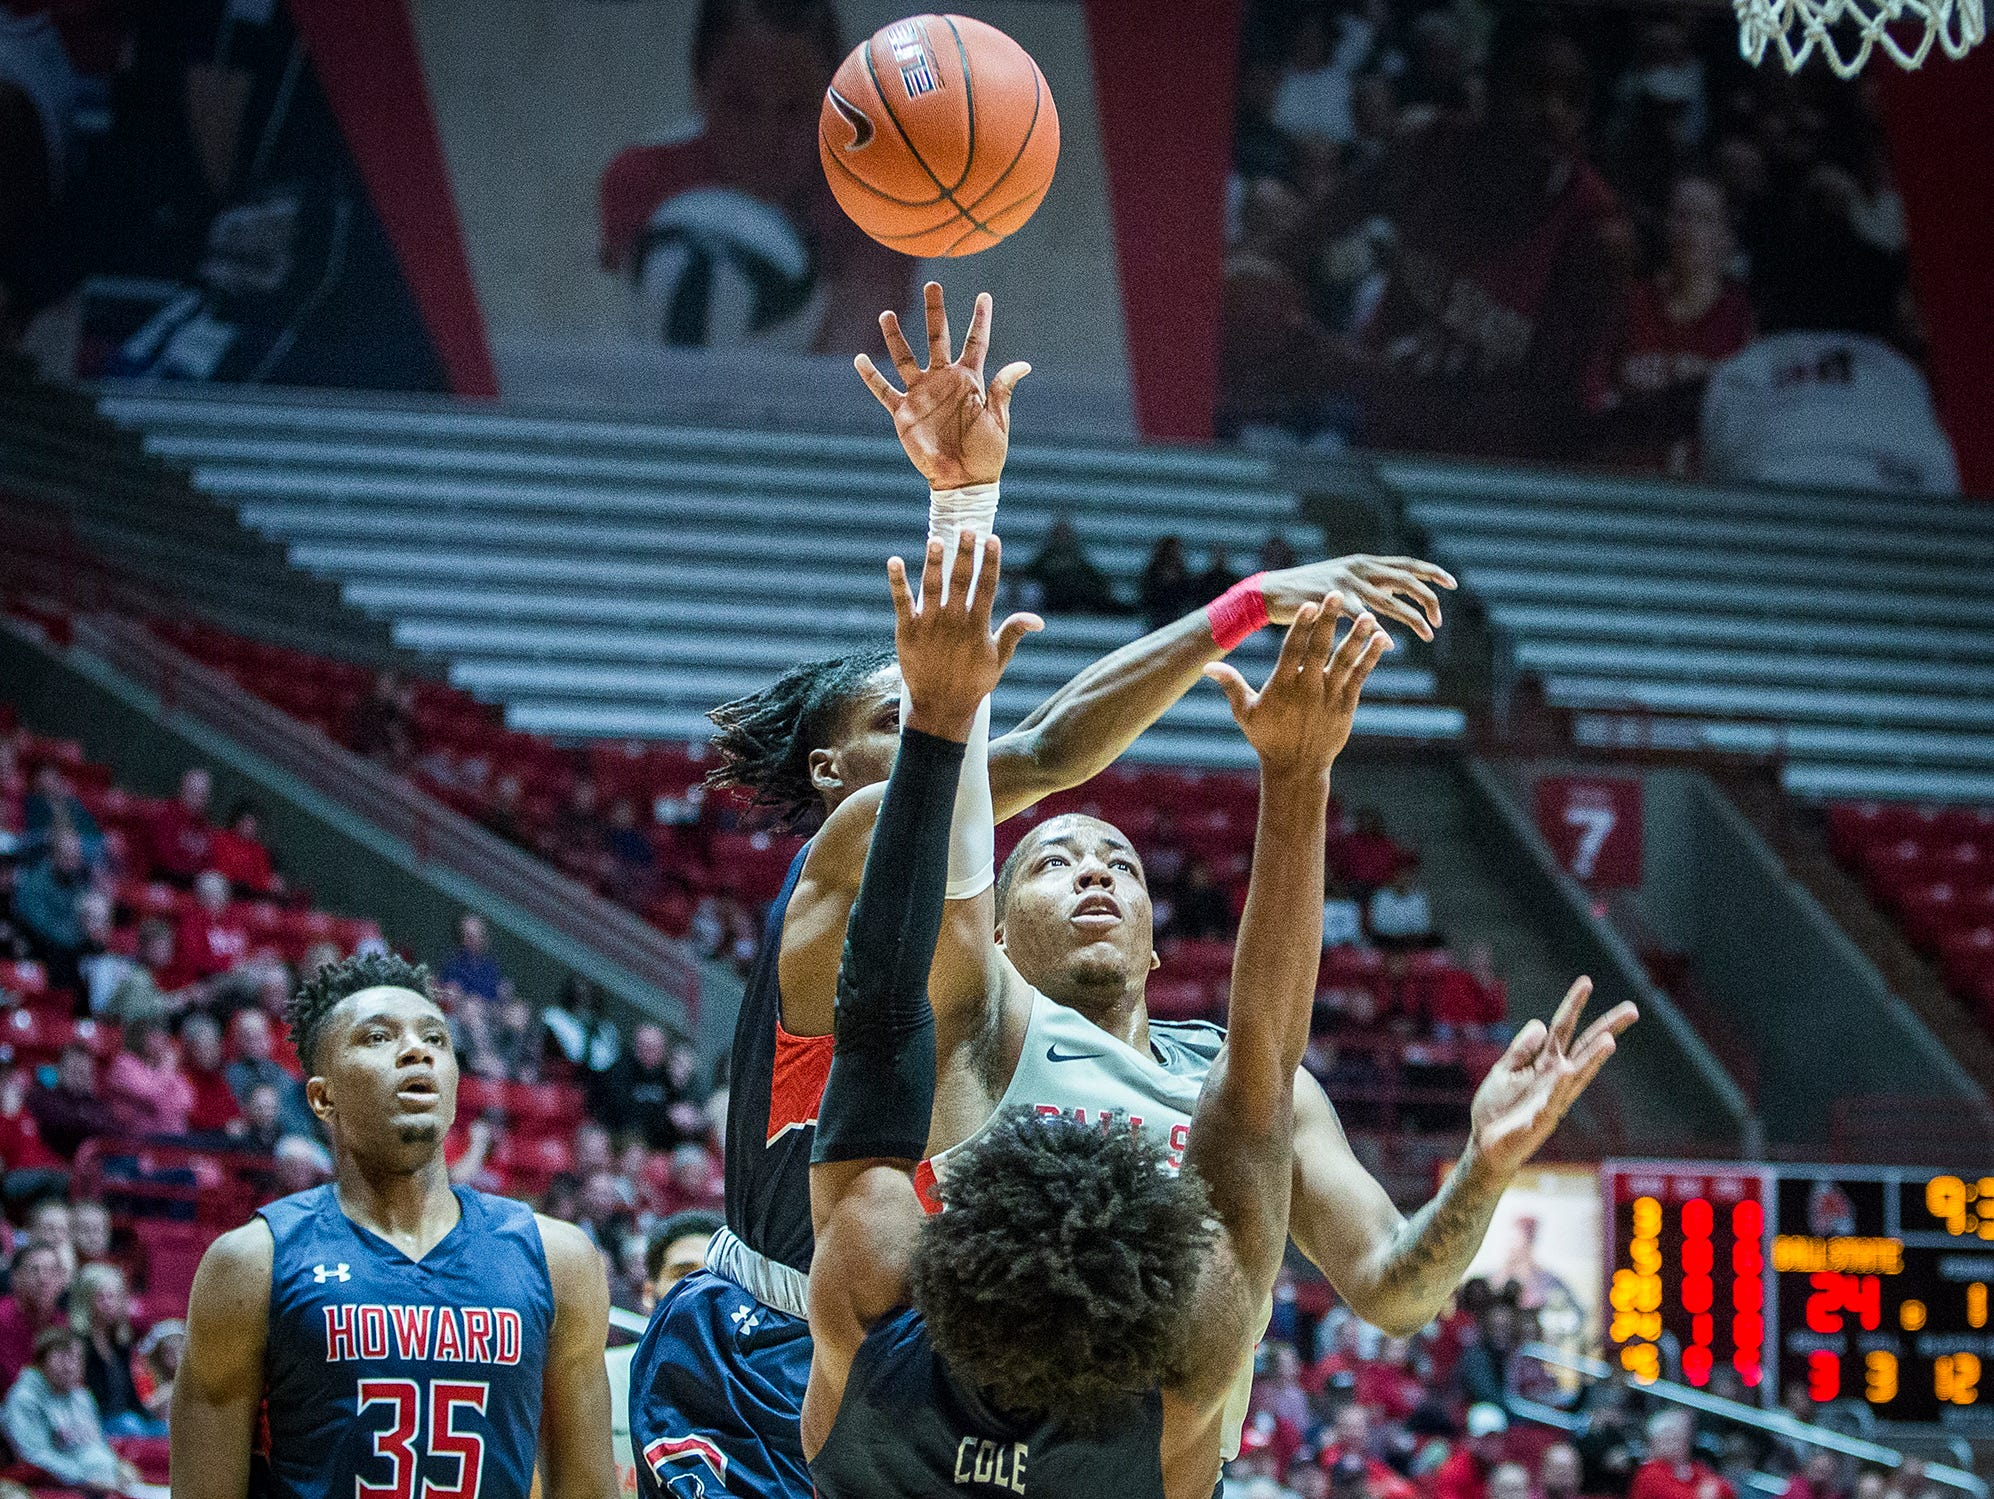 Ball State's Ishmael El-Amin shoots past Howard's defense during their game at Worthen Arena Thursday, Dec. 20, 2018.